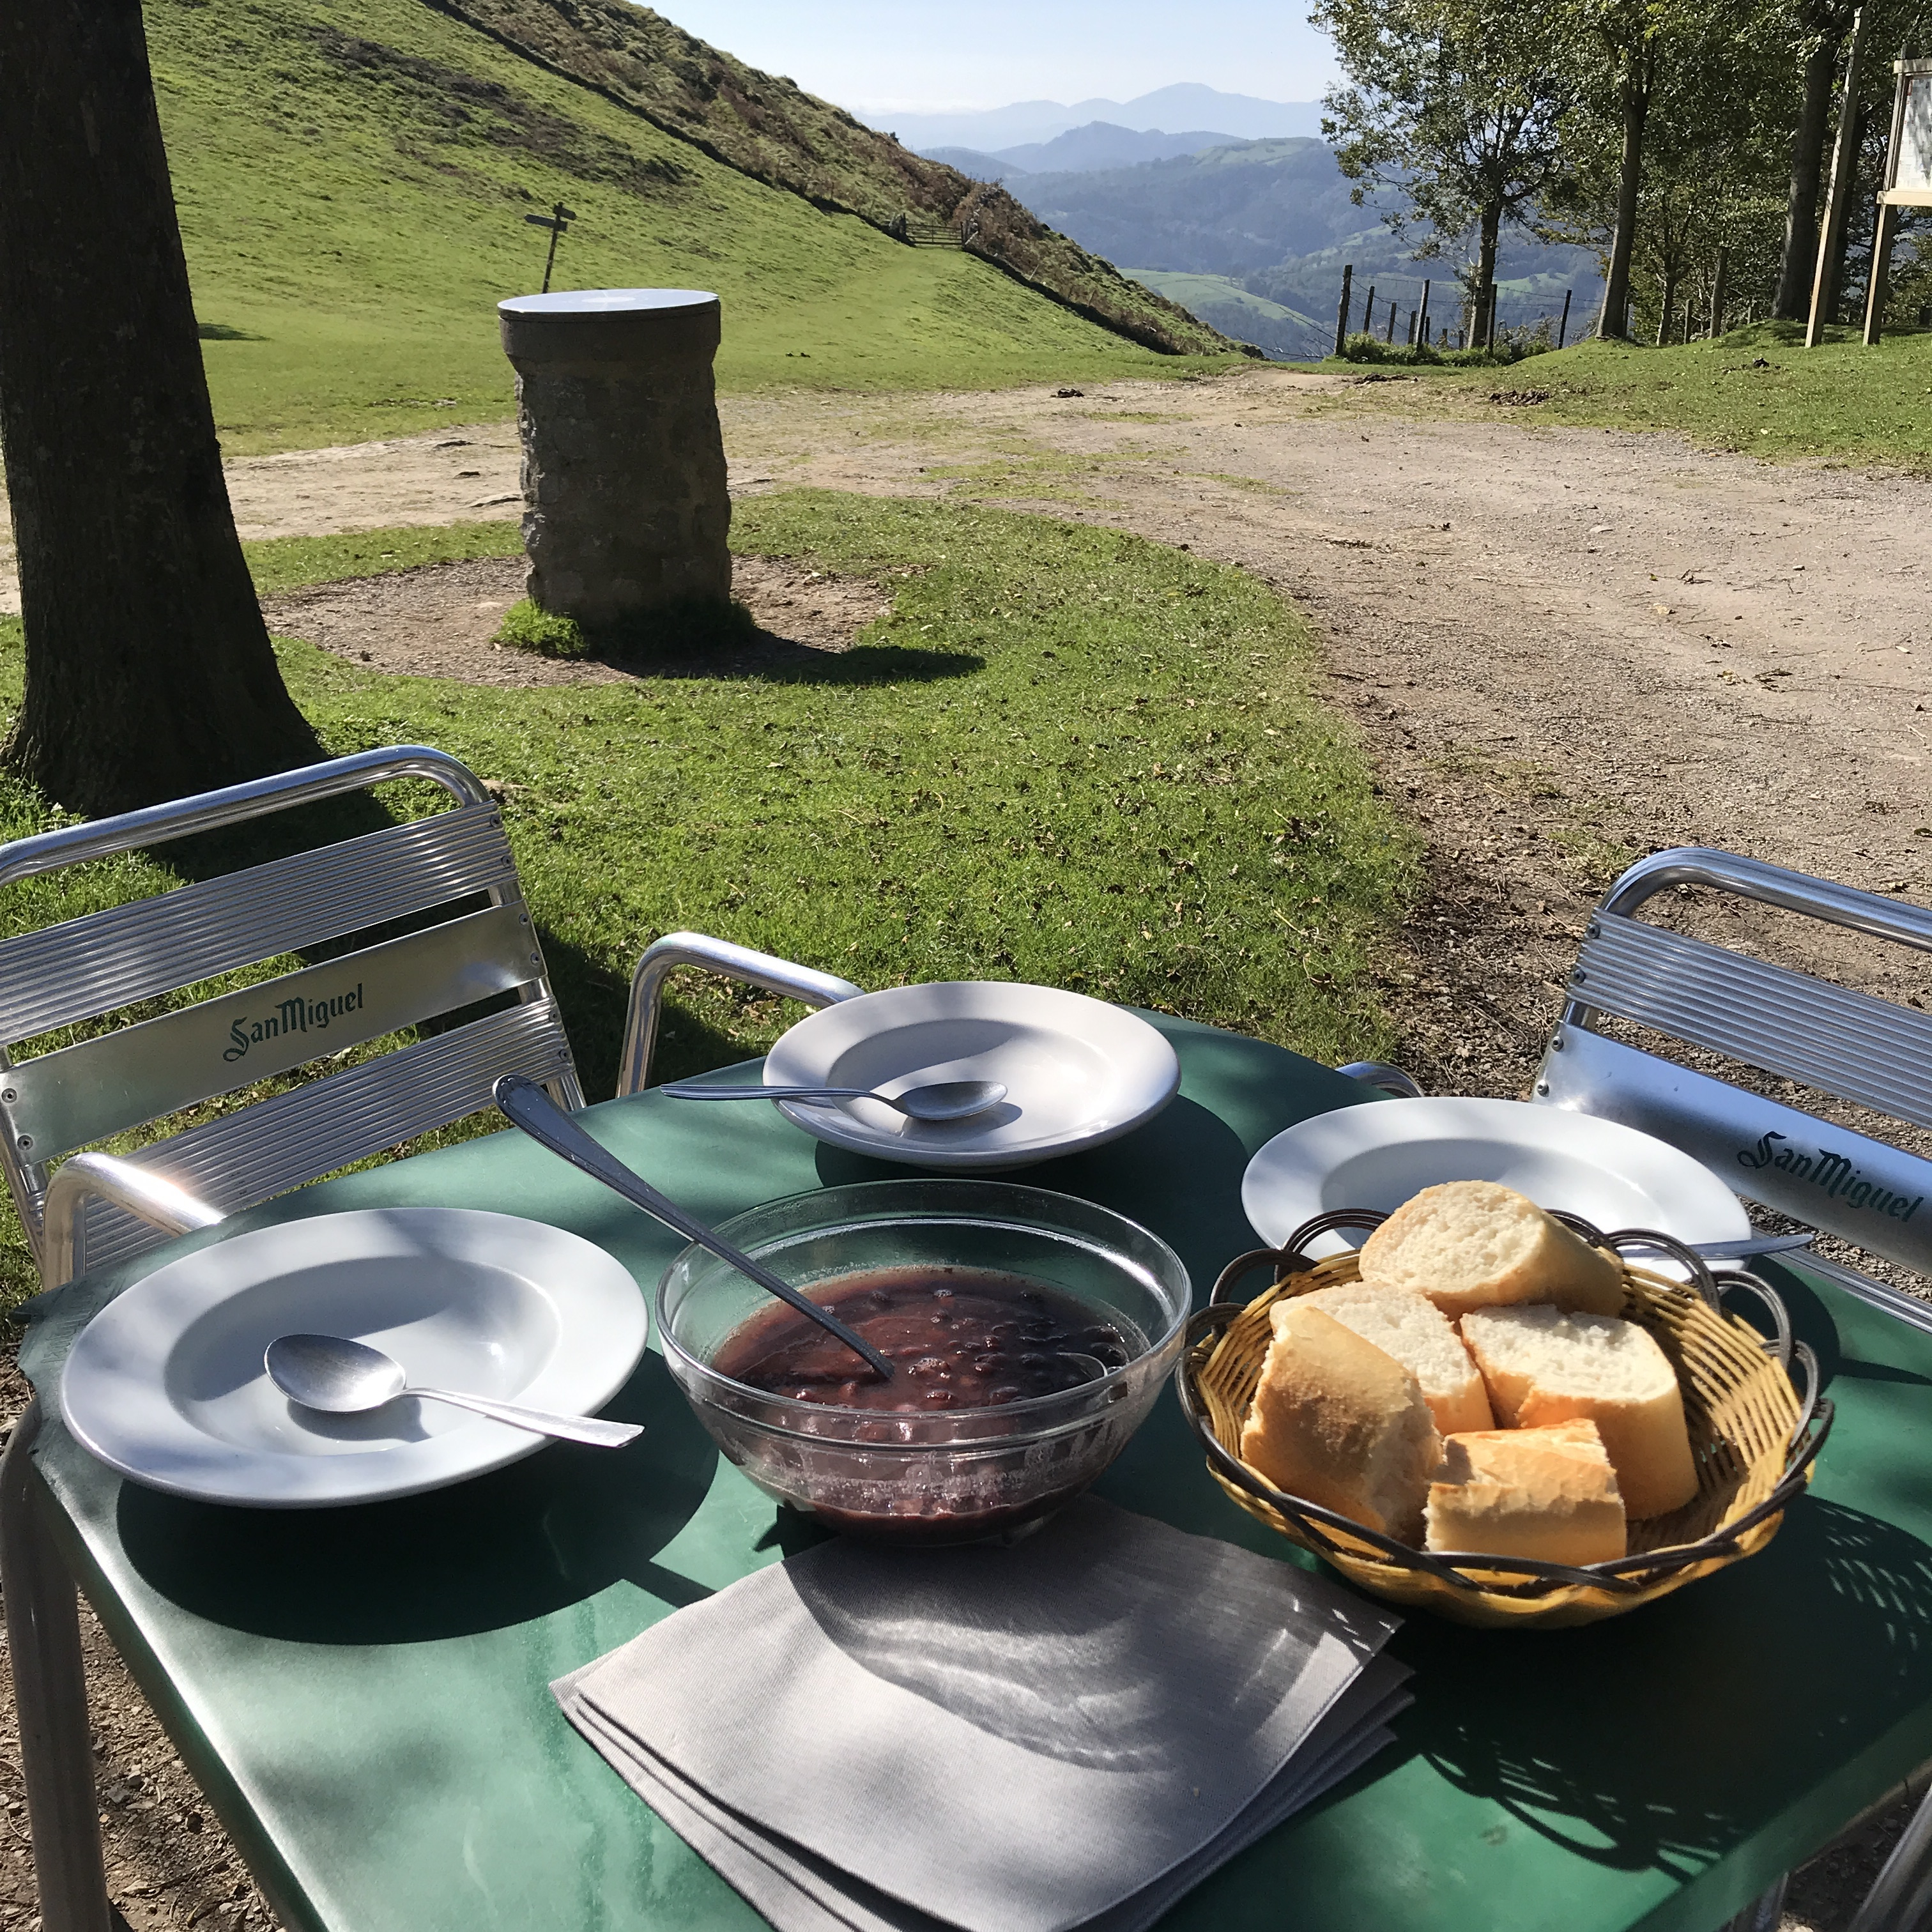 HEARTY LUNCH IN MOUNT HERNIO